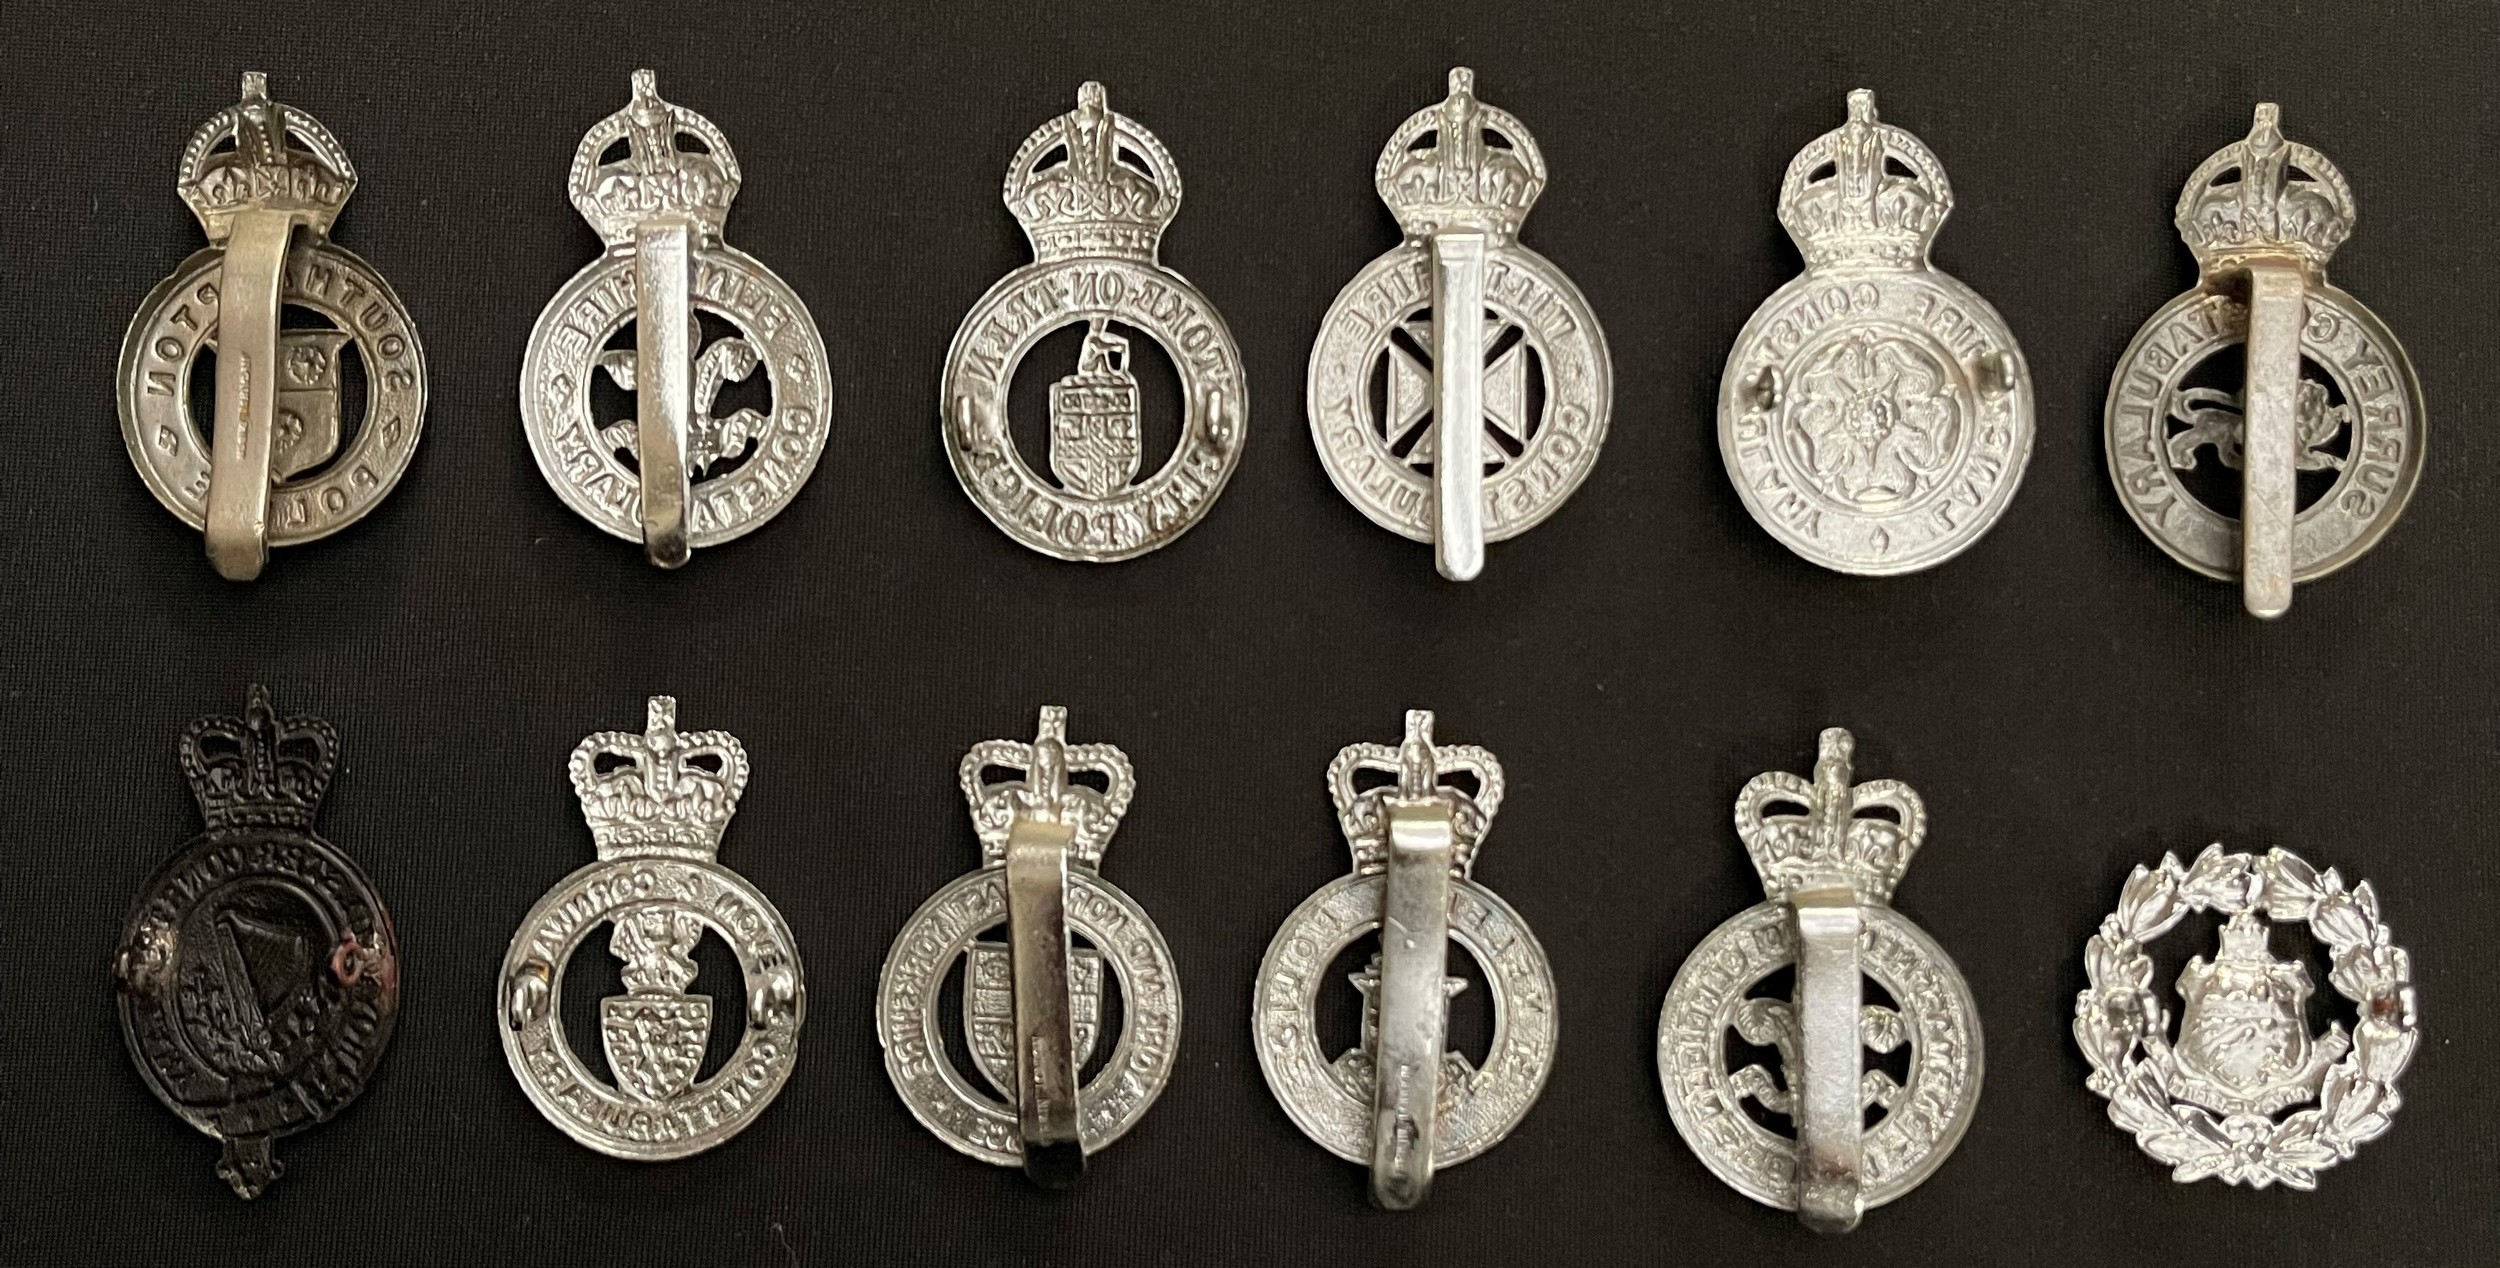 A collection of British Kings Crown and Queens Crown Police Cap badges to include: Kings Crown Stoke - Image 2 of 2